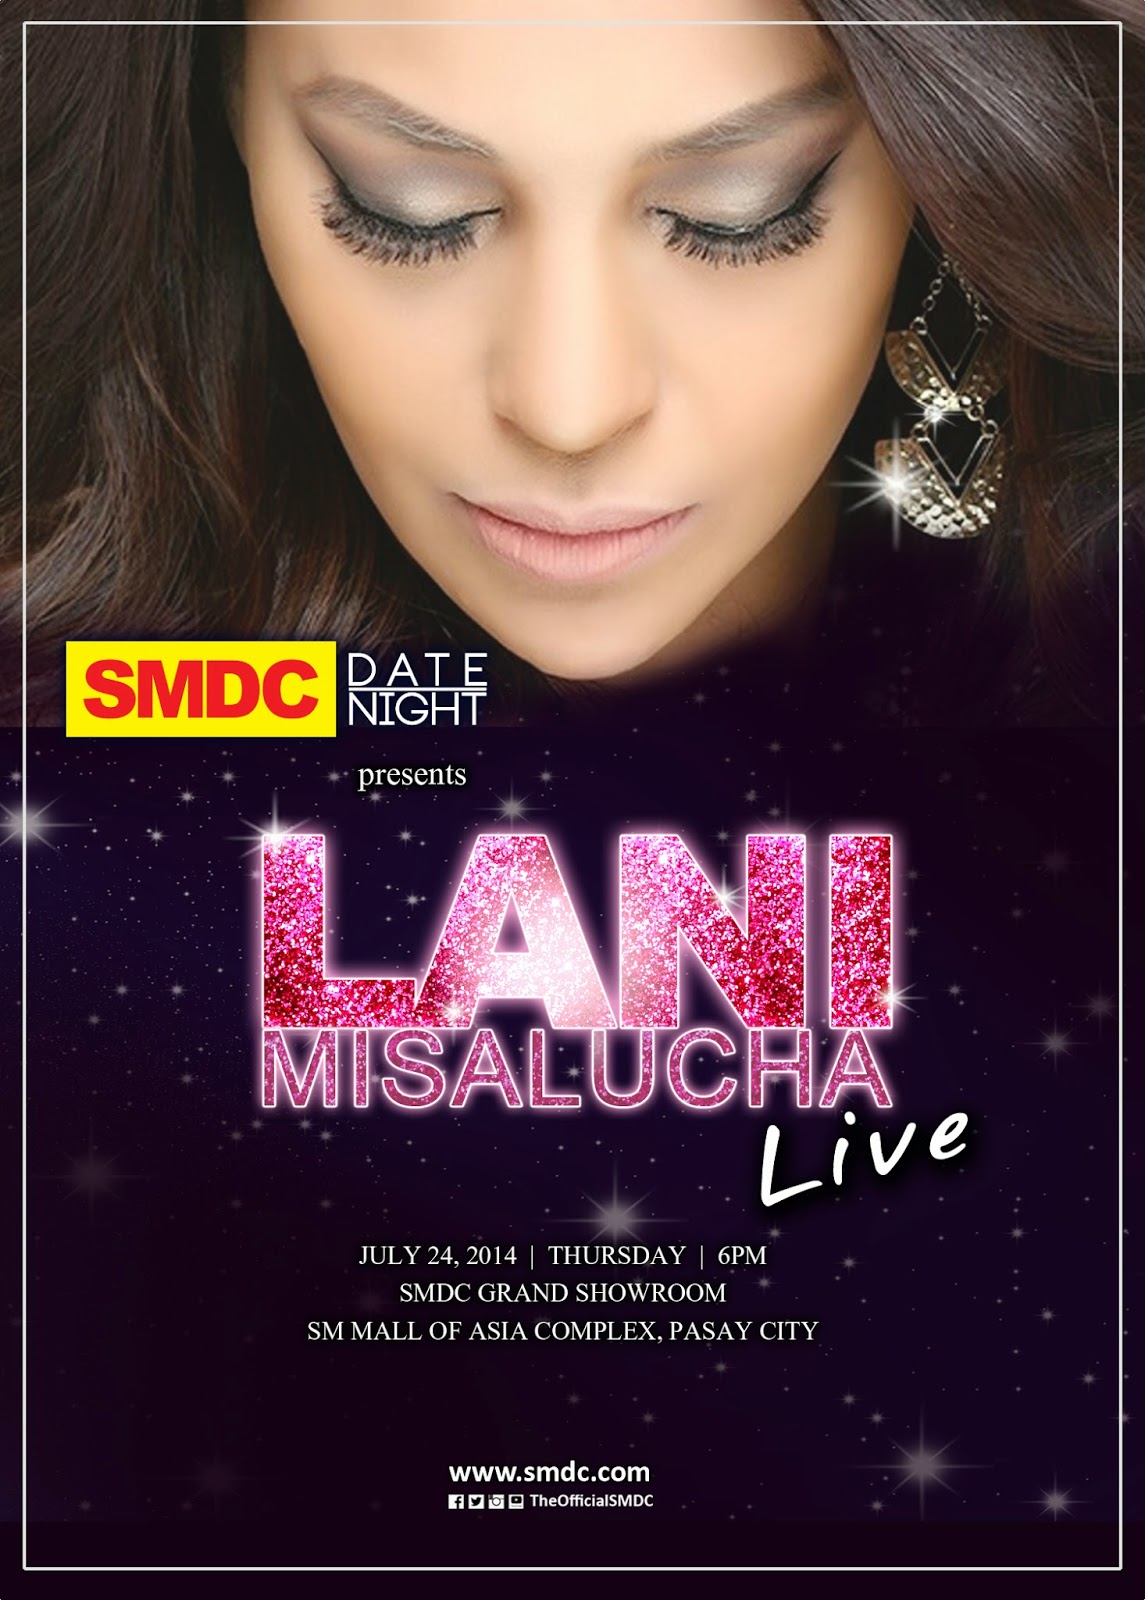 Join us and experience the soulful voice of Ms. Lani Misalucha live at the SMDC Grand Showroom this July 24, 2014, 6PM